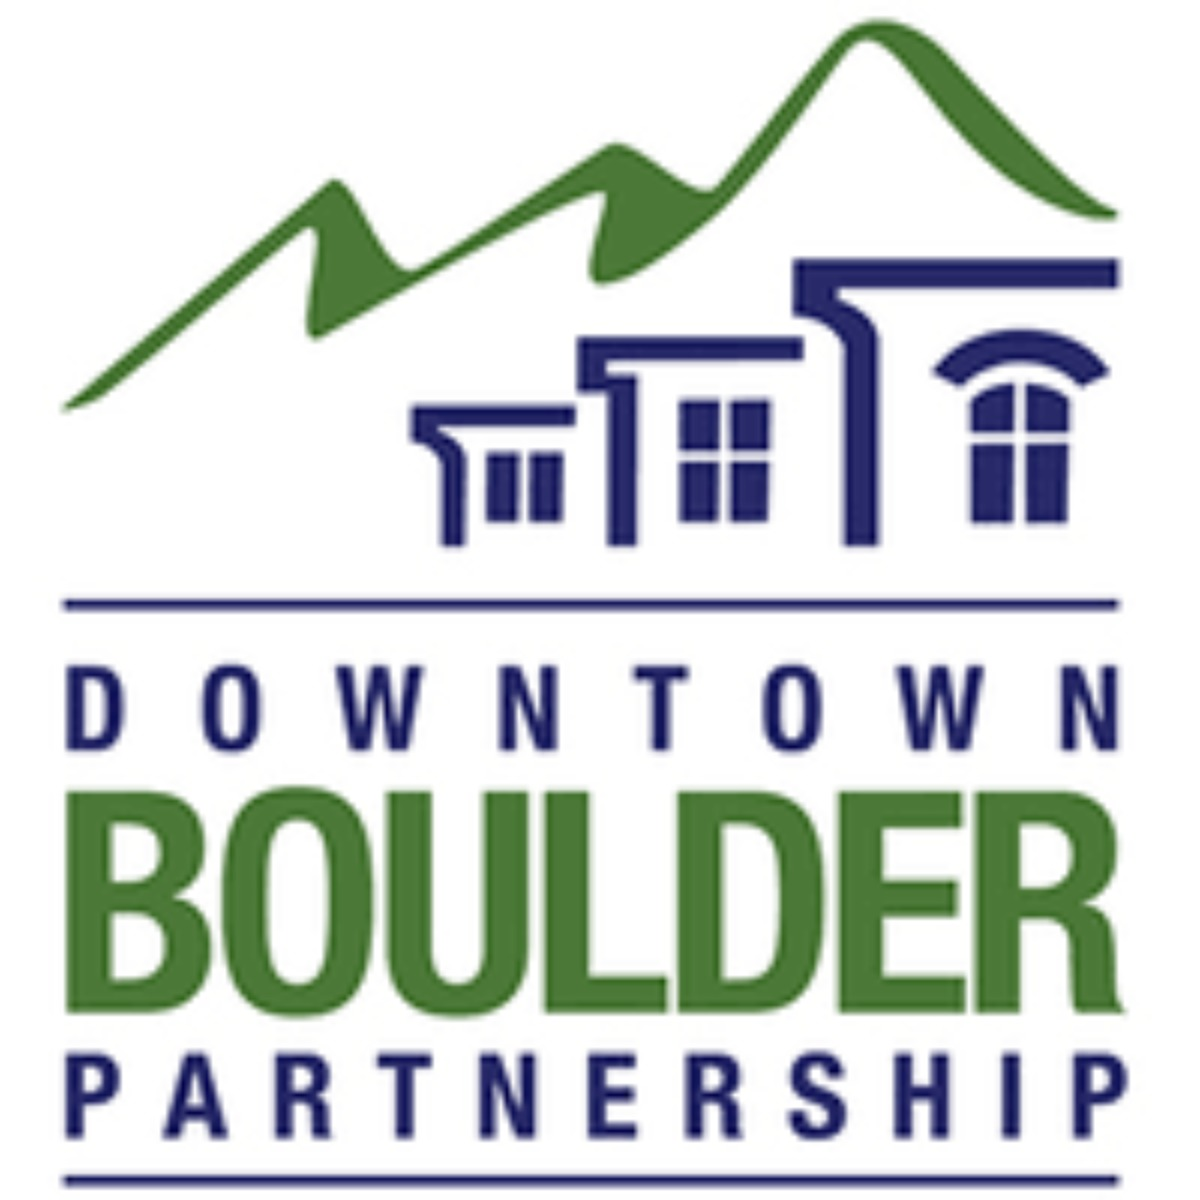 Downtown Boulder Partnership